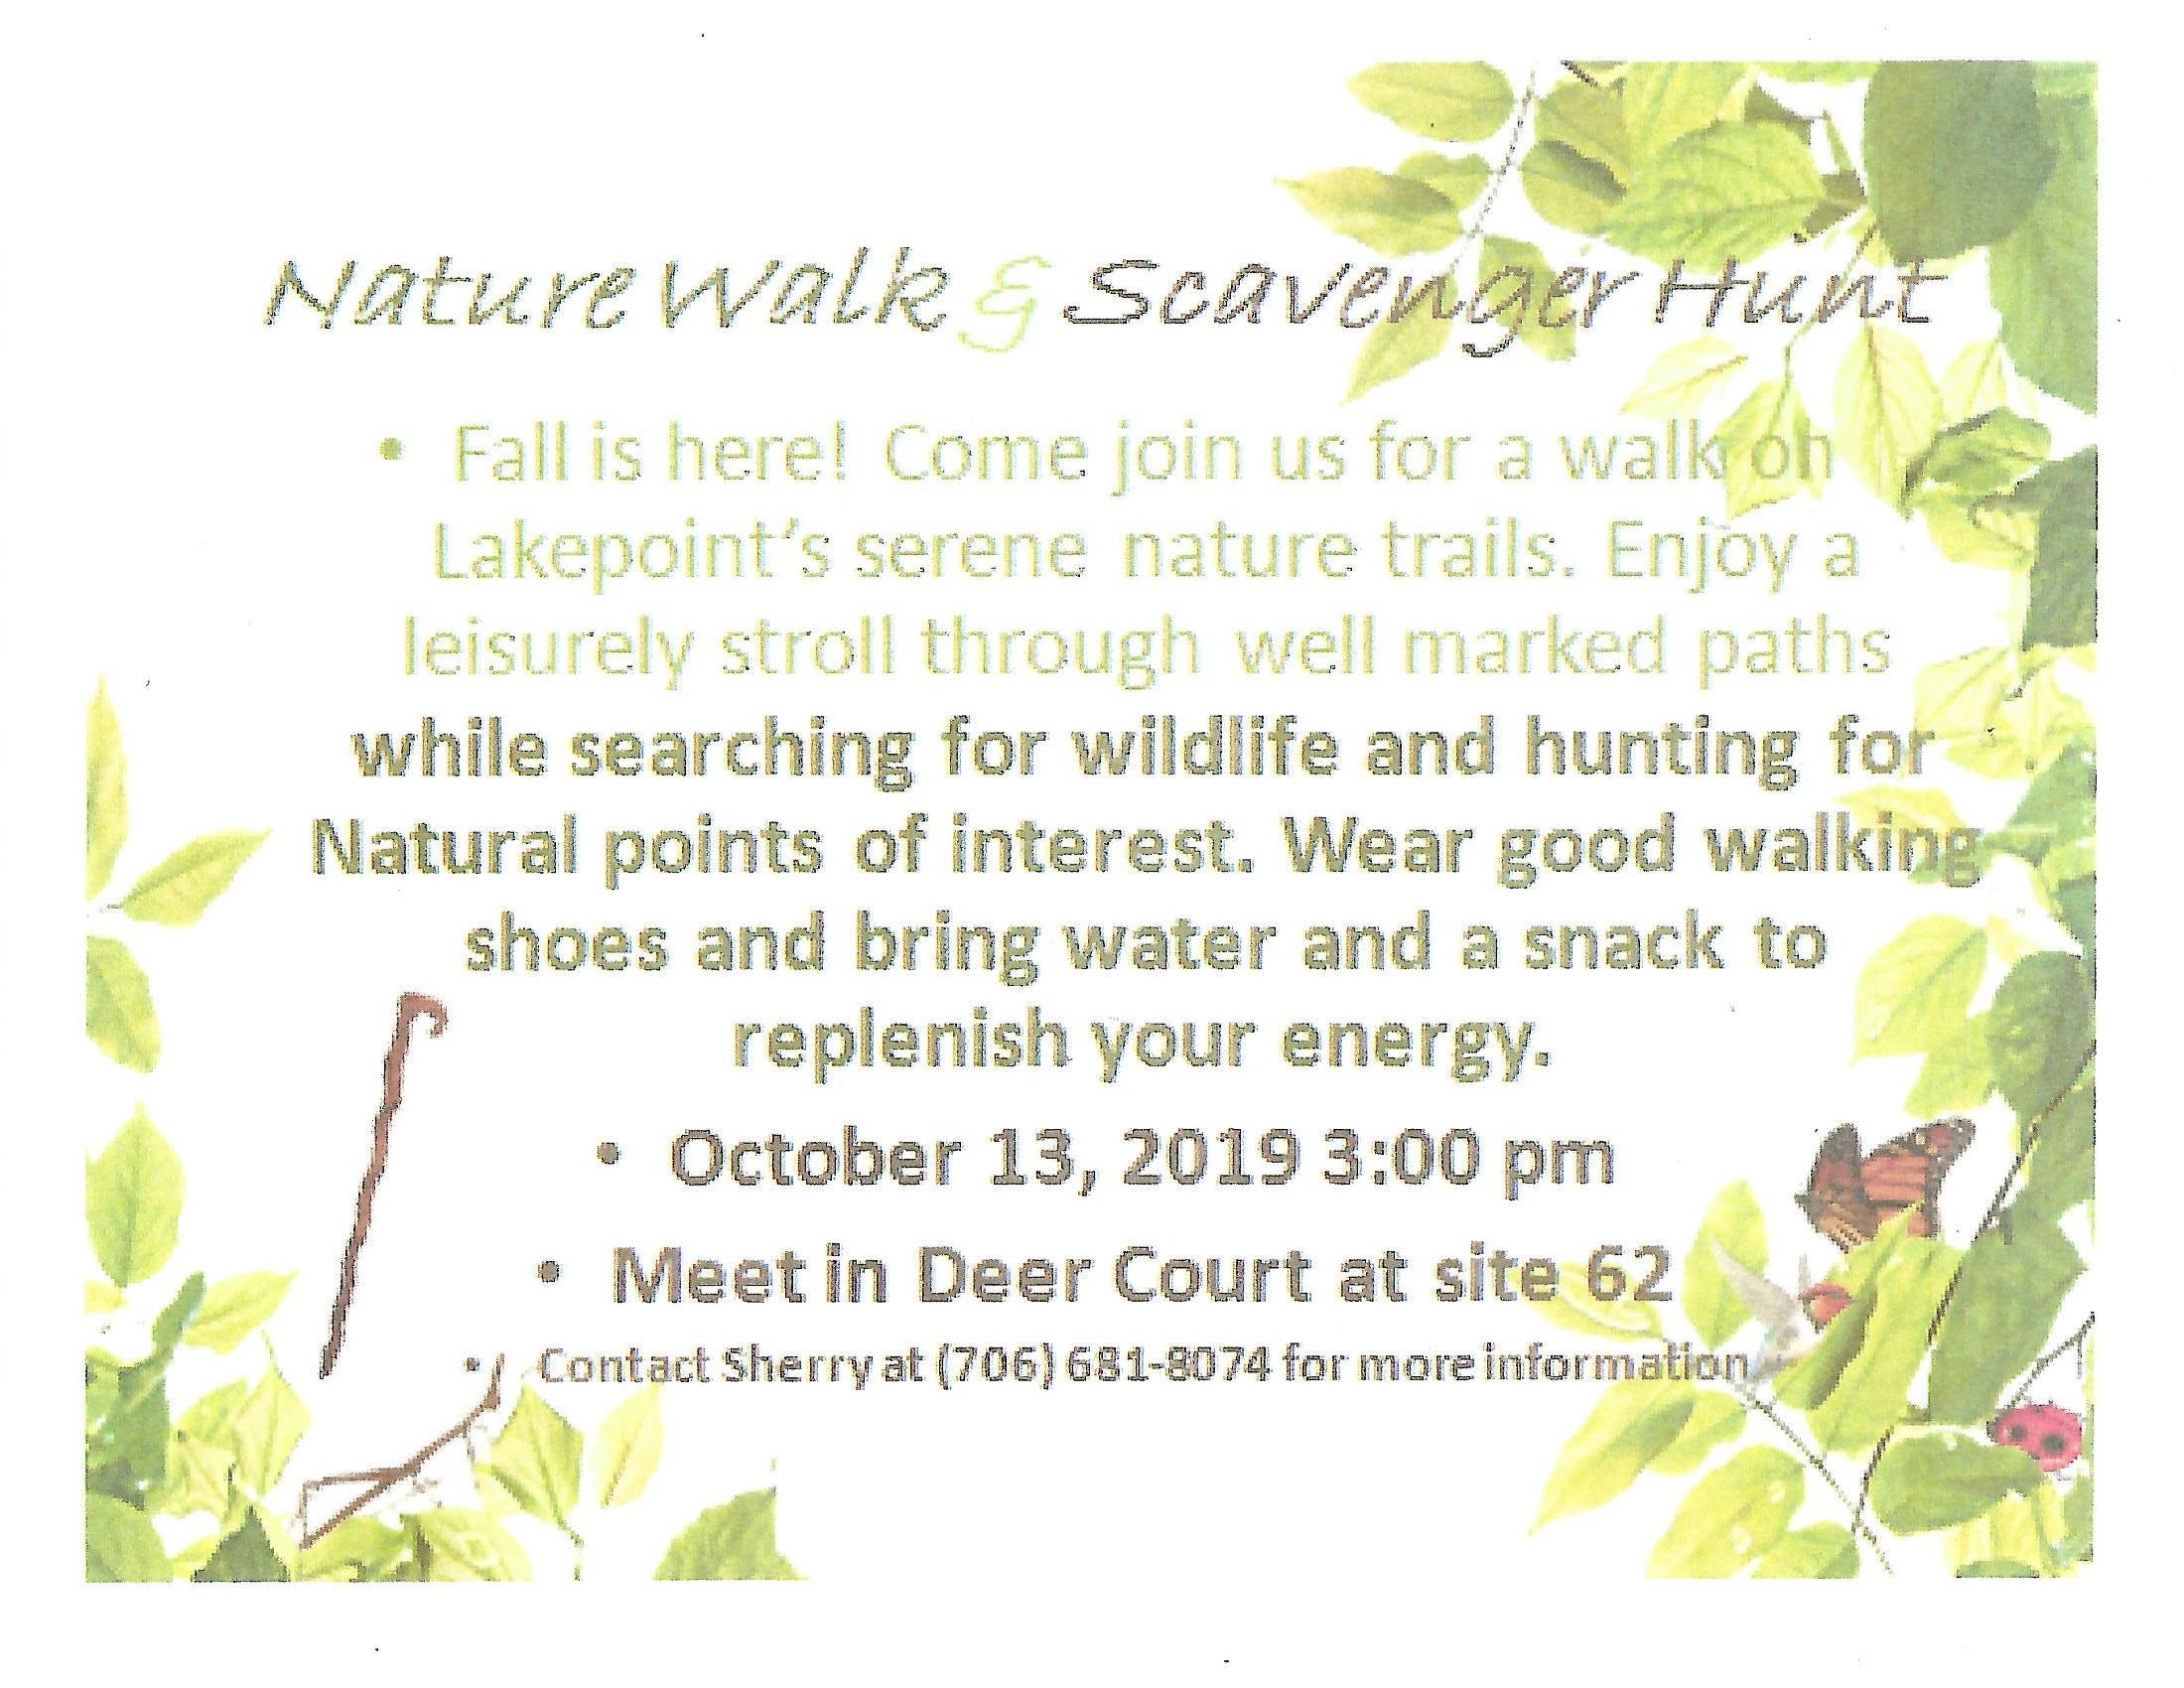 Lakepoint Nature Walk & Scavenger Hunt